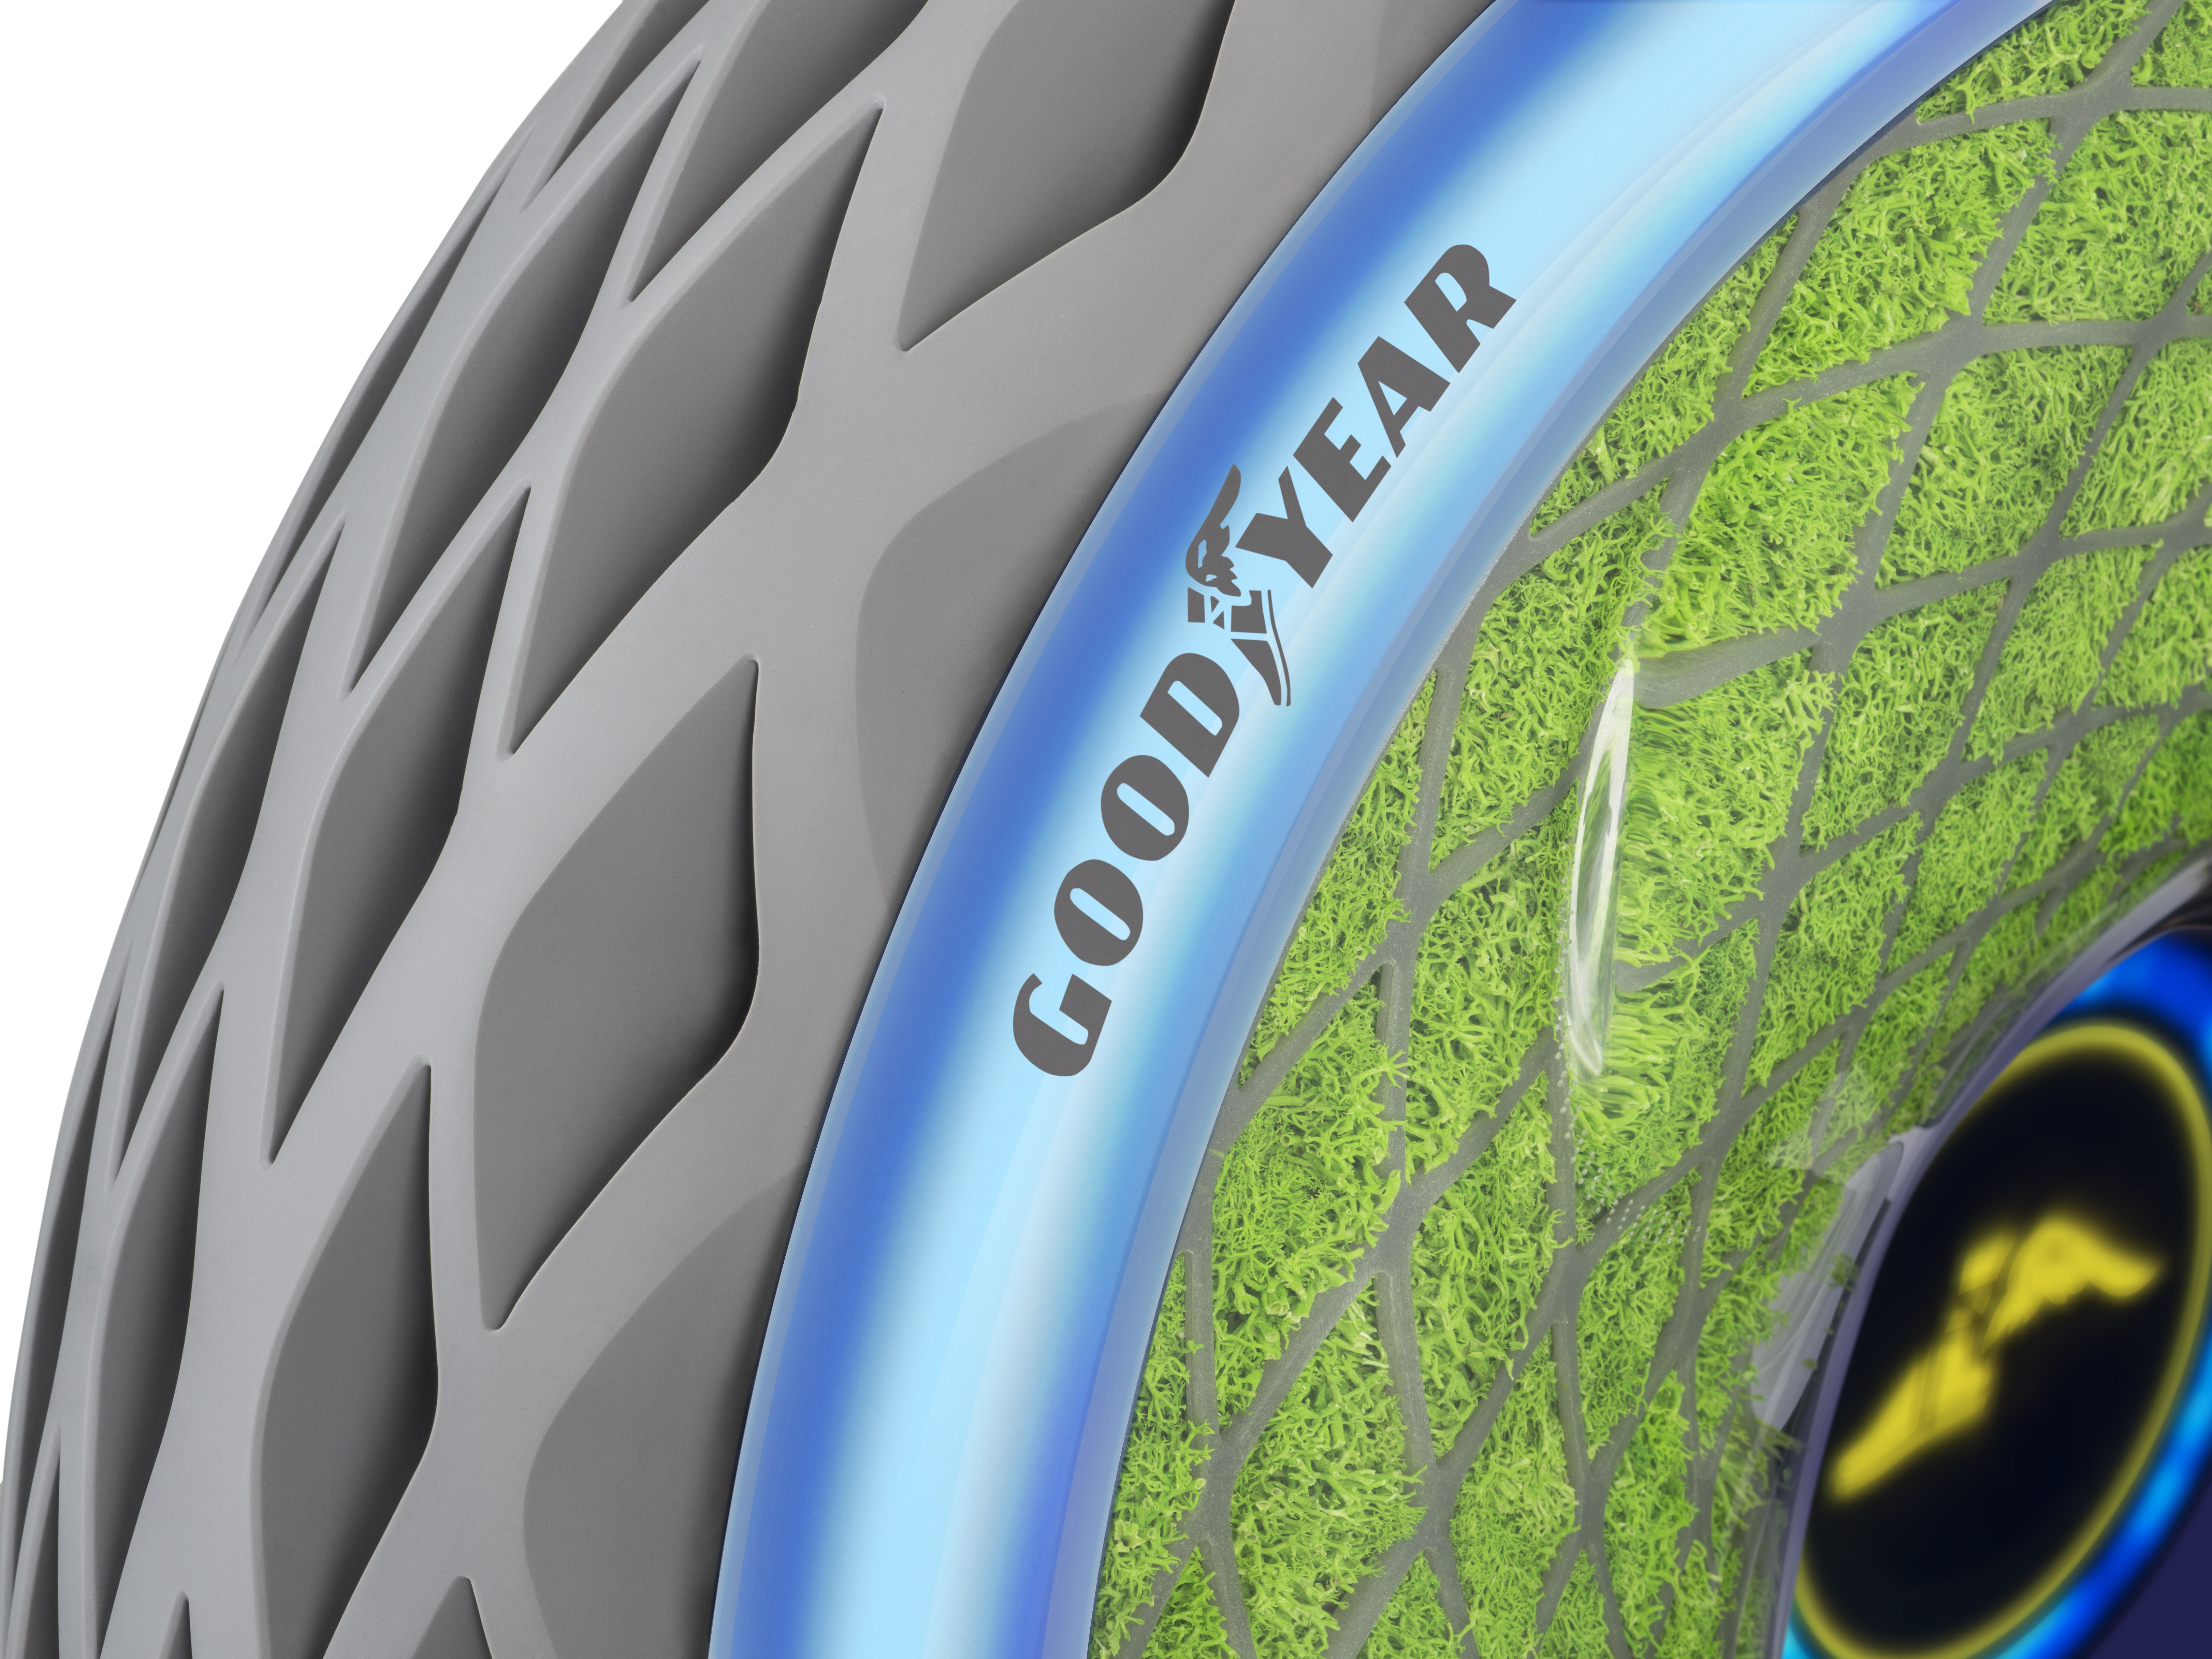 Latest Goodyear Concept Tire Grows Moss and Cleans the Air